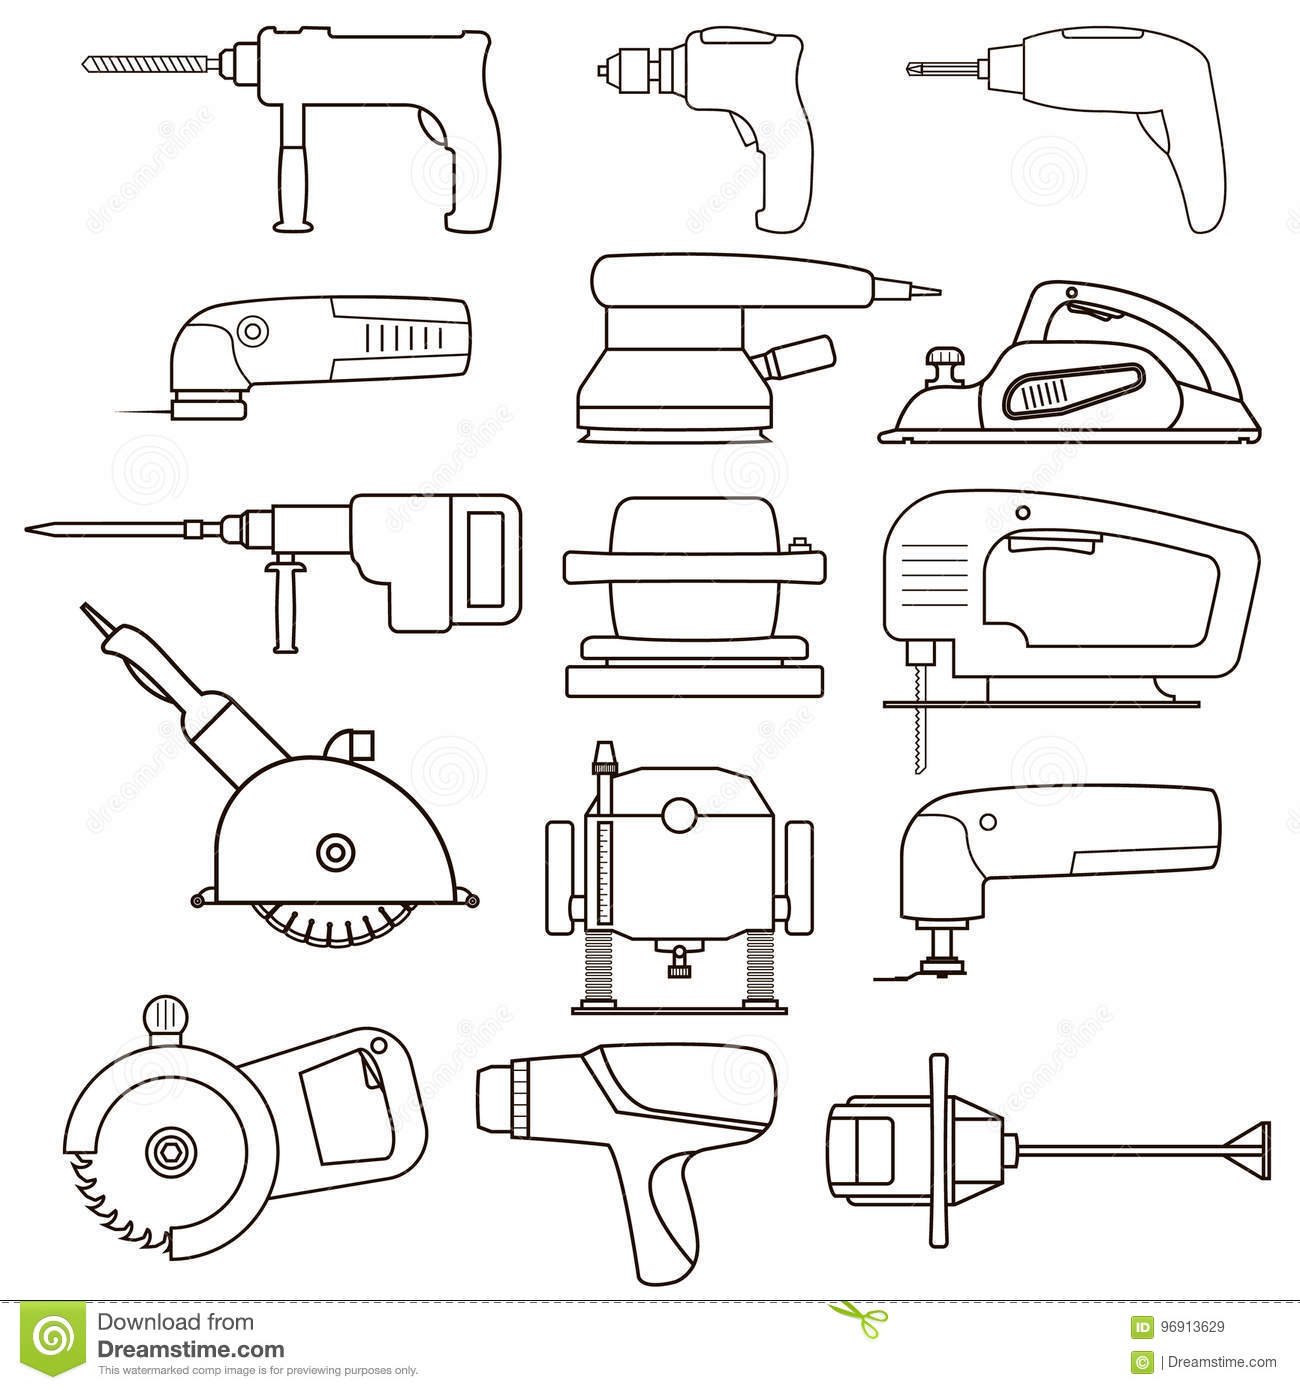 Construction Electric Power Tools Vectors Collection